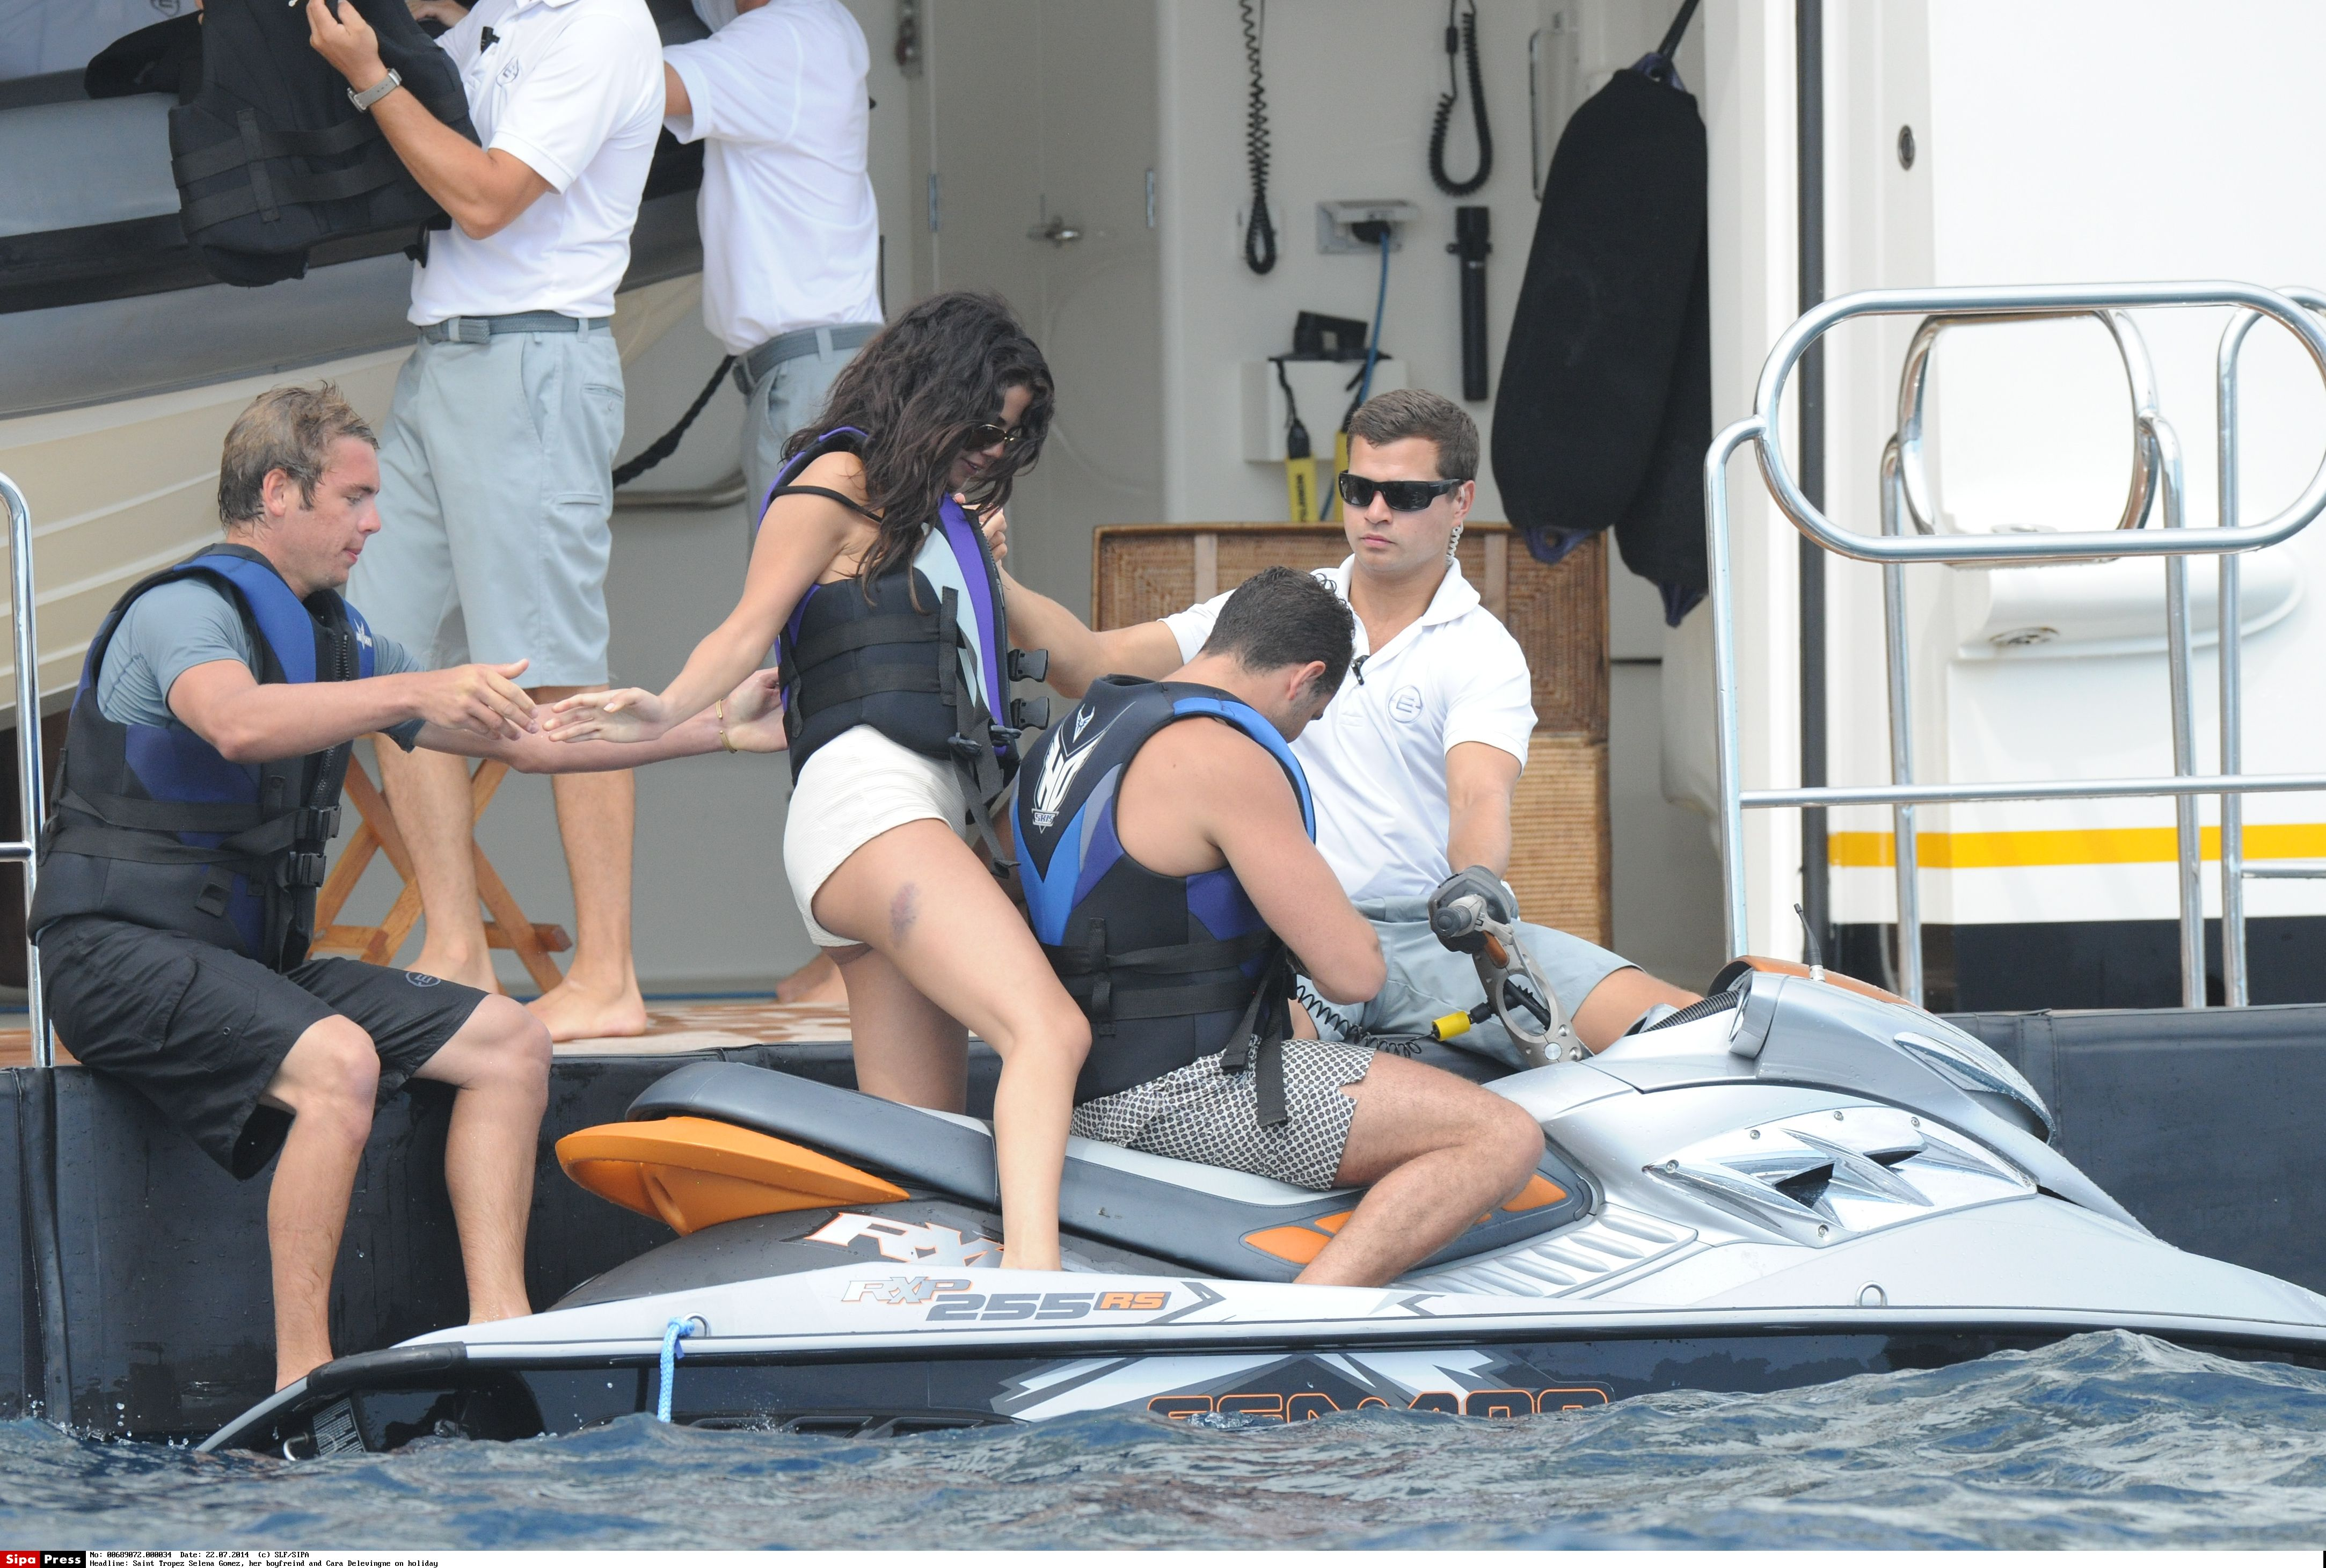 Saint Tropez Selena Gomez, her boyfreind and Cara Delevingne on holiday